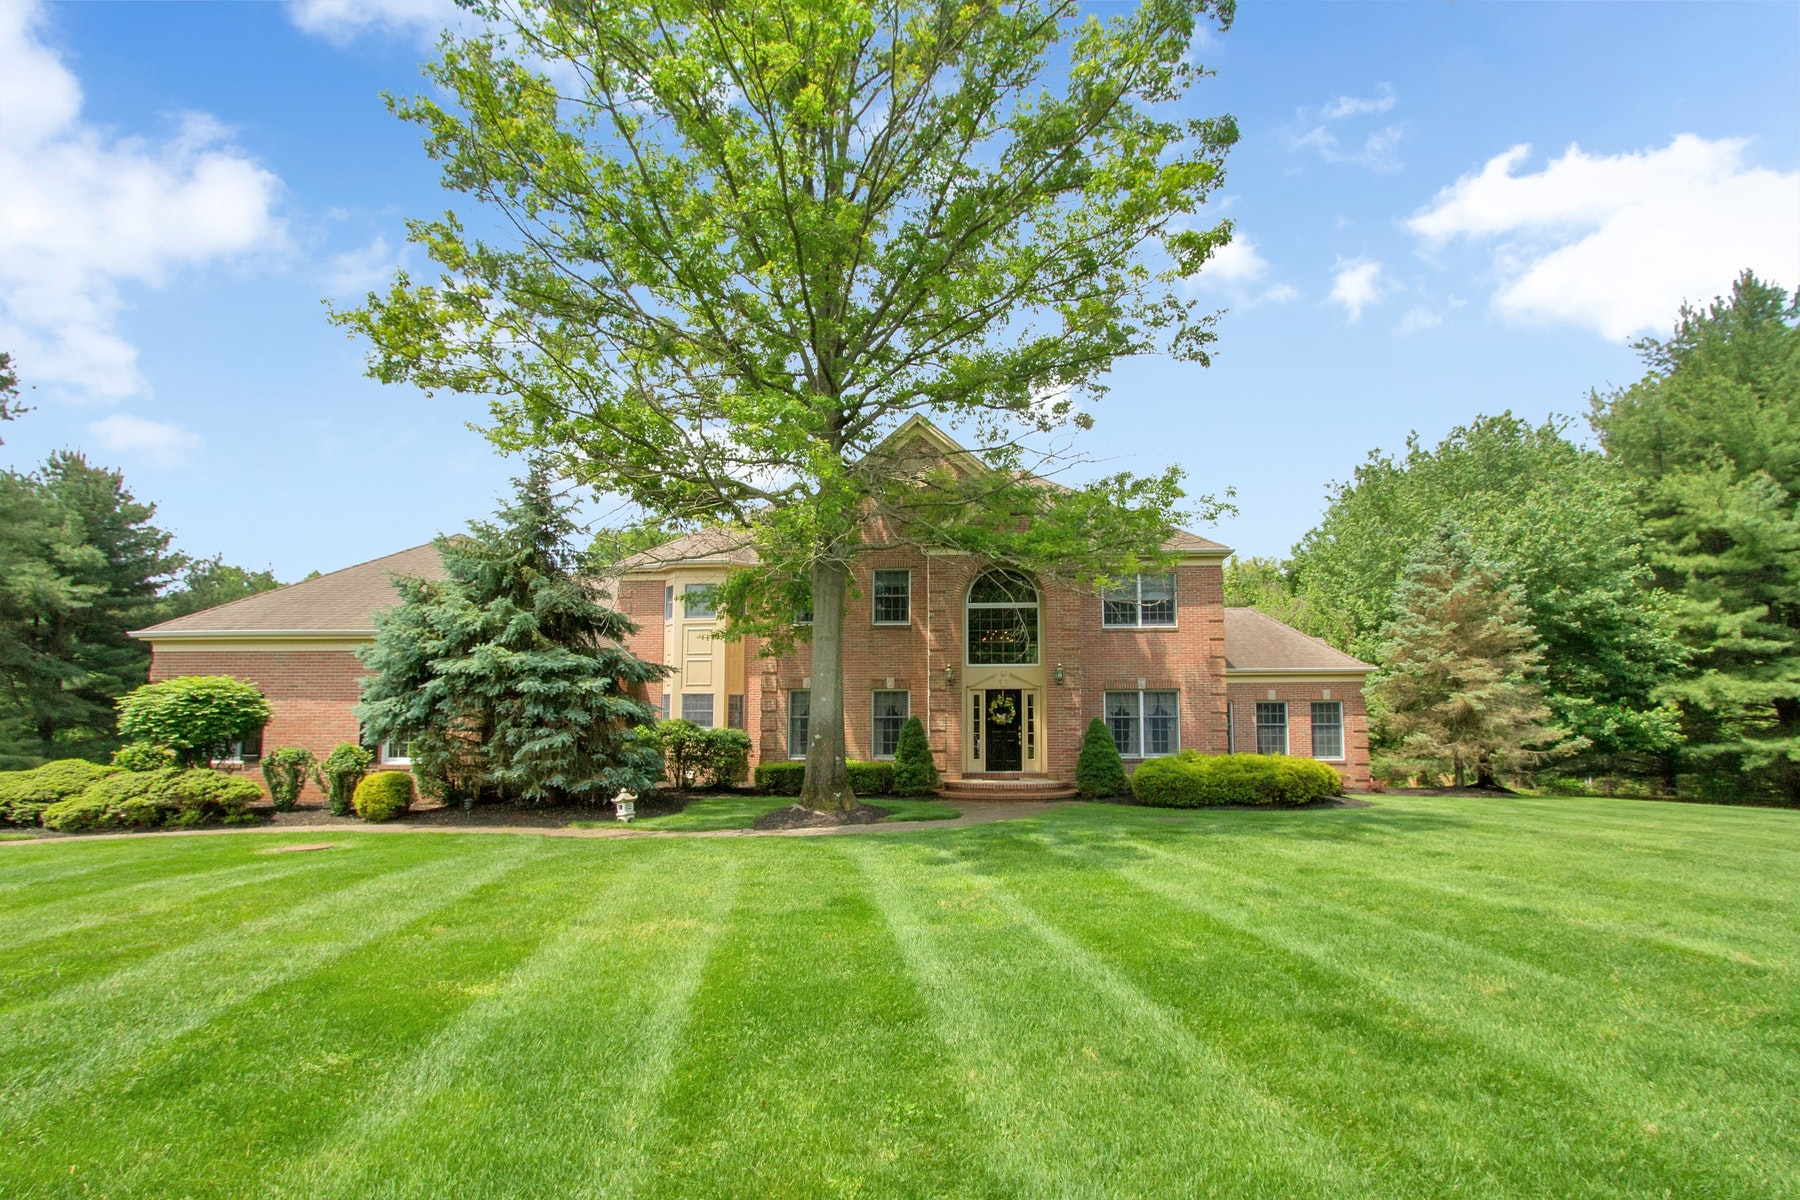 Single Family Home for Sale at LIVE SPACIOUS 2 Concord Court, Colts Neck, New Jersey 07722 United States